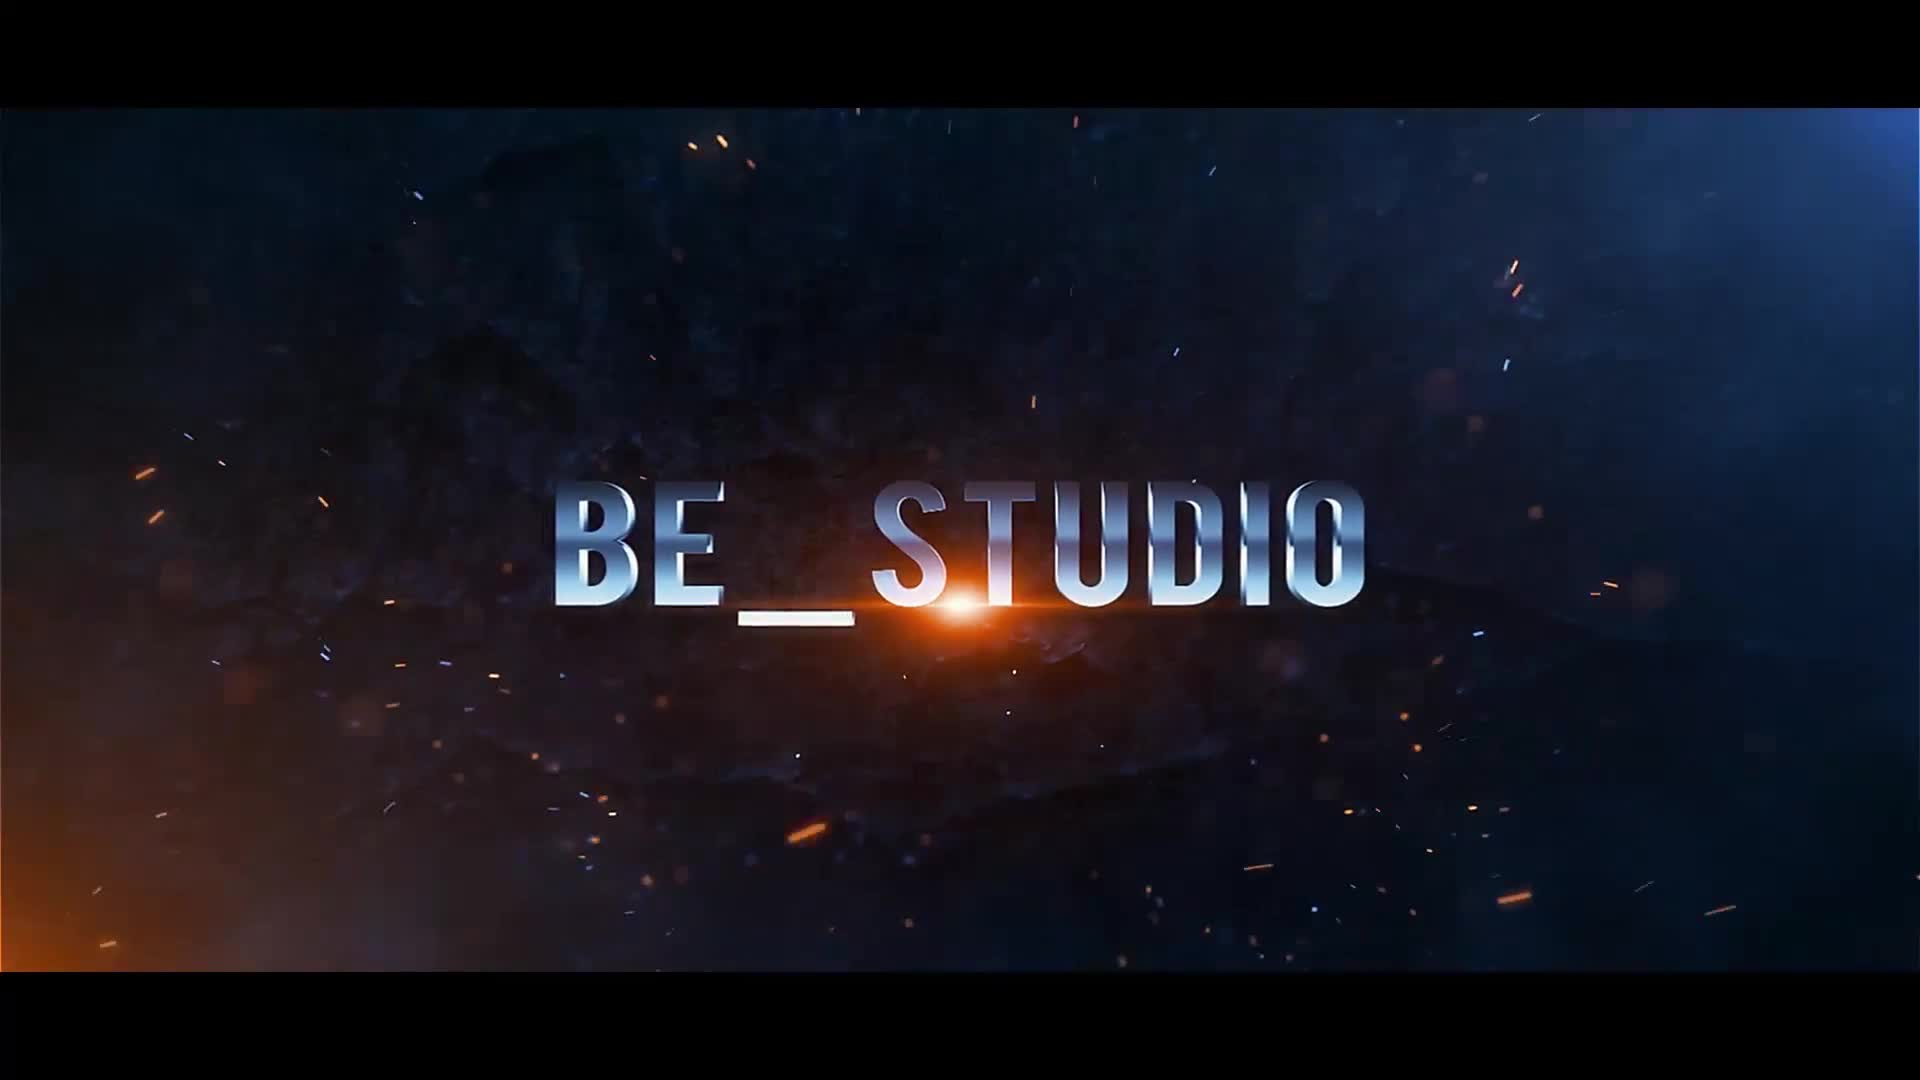 Title Trailer Videohive 20773718 After Effects Image 1